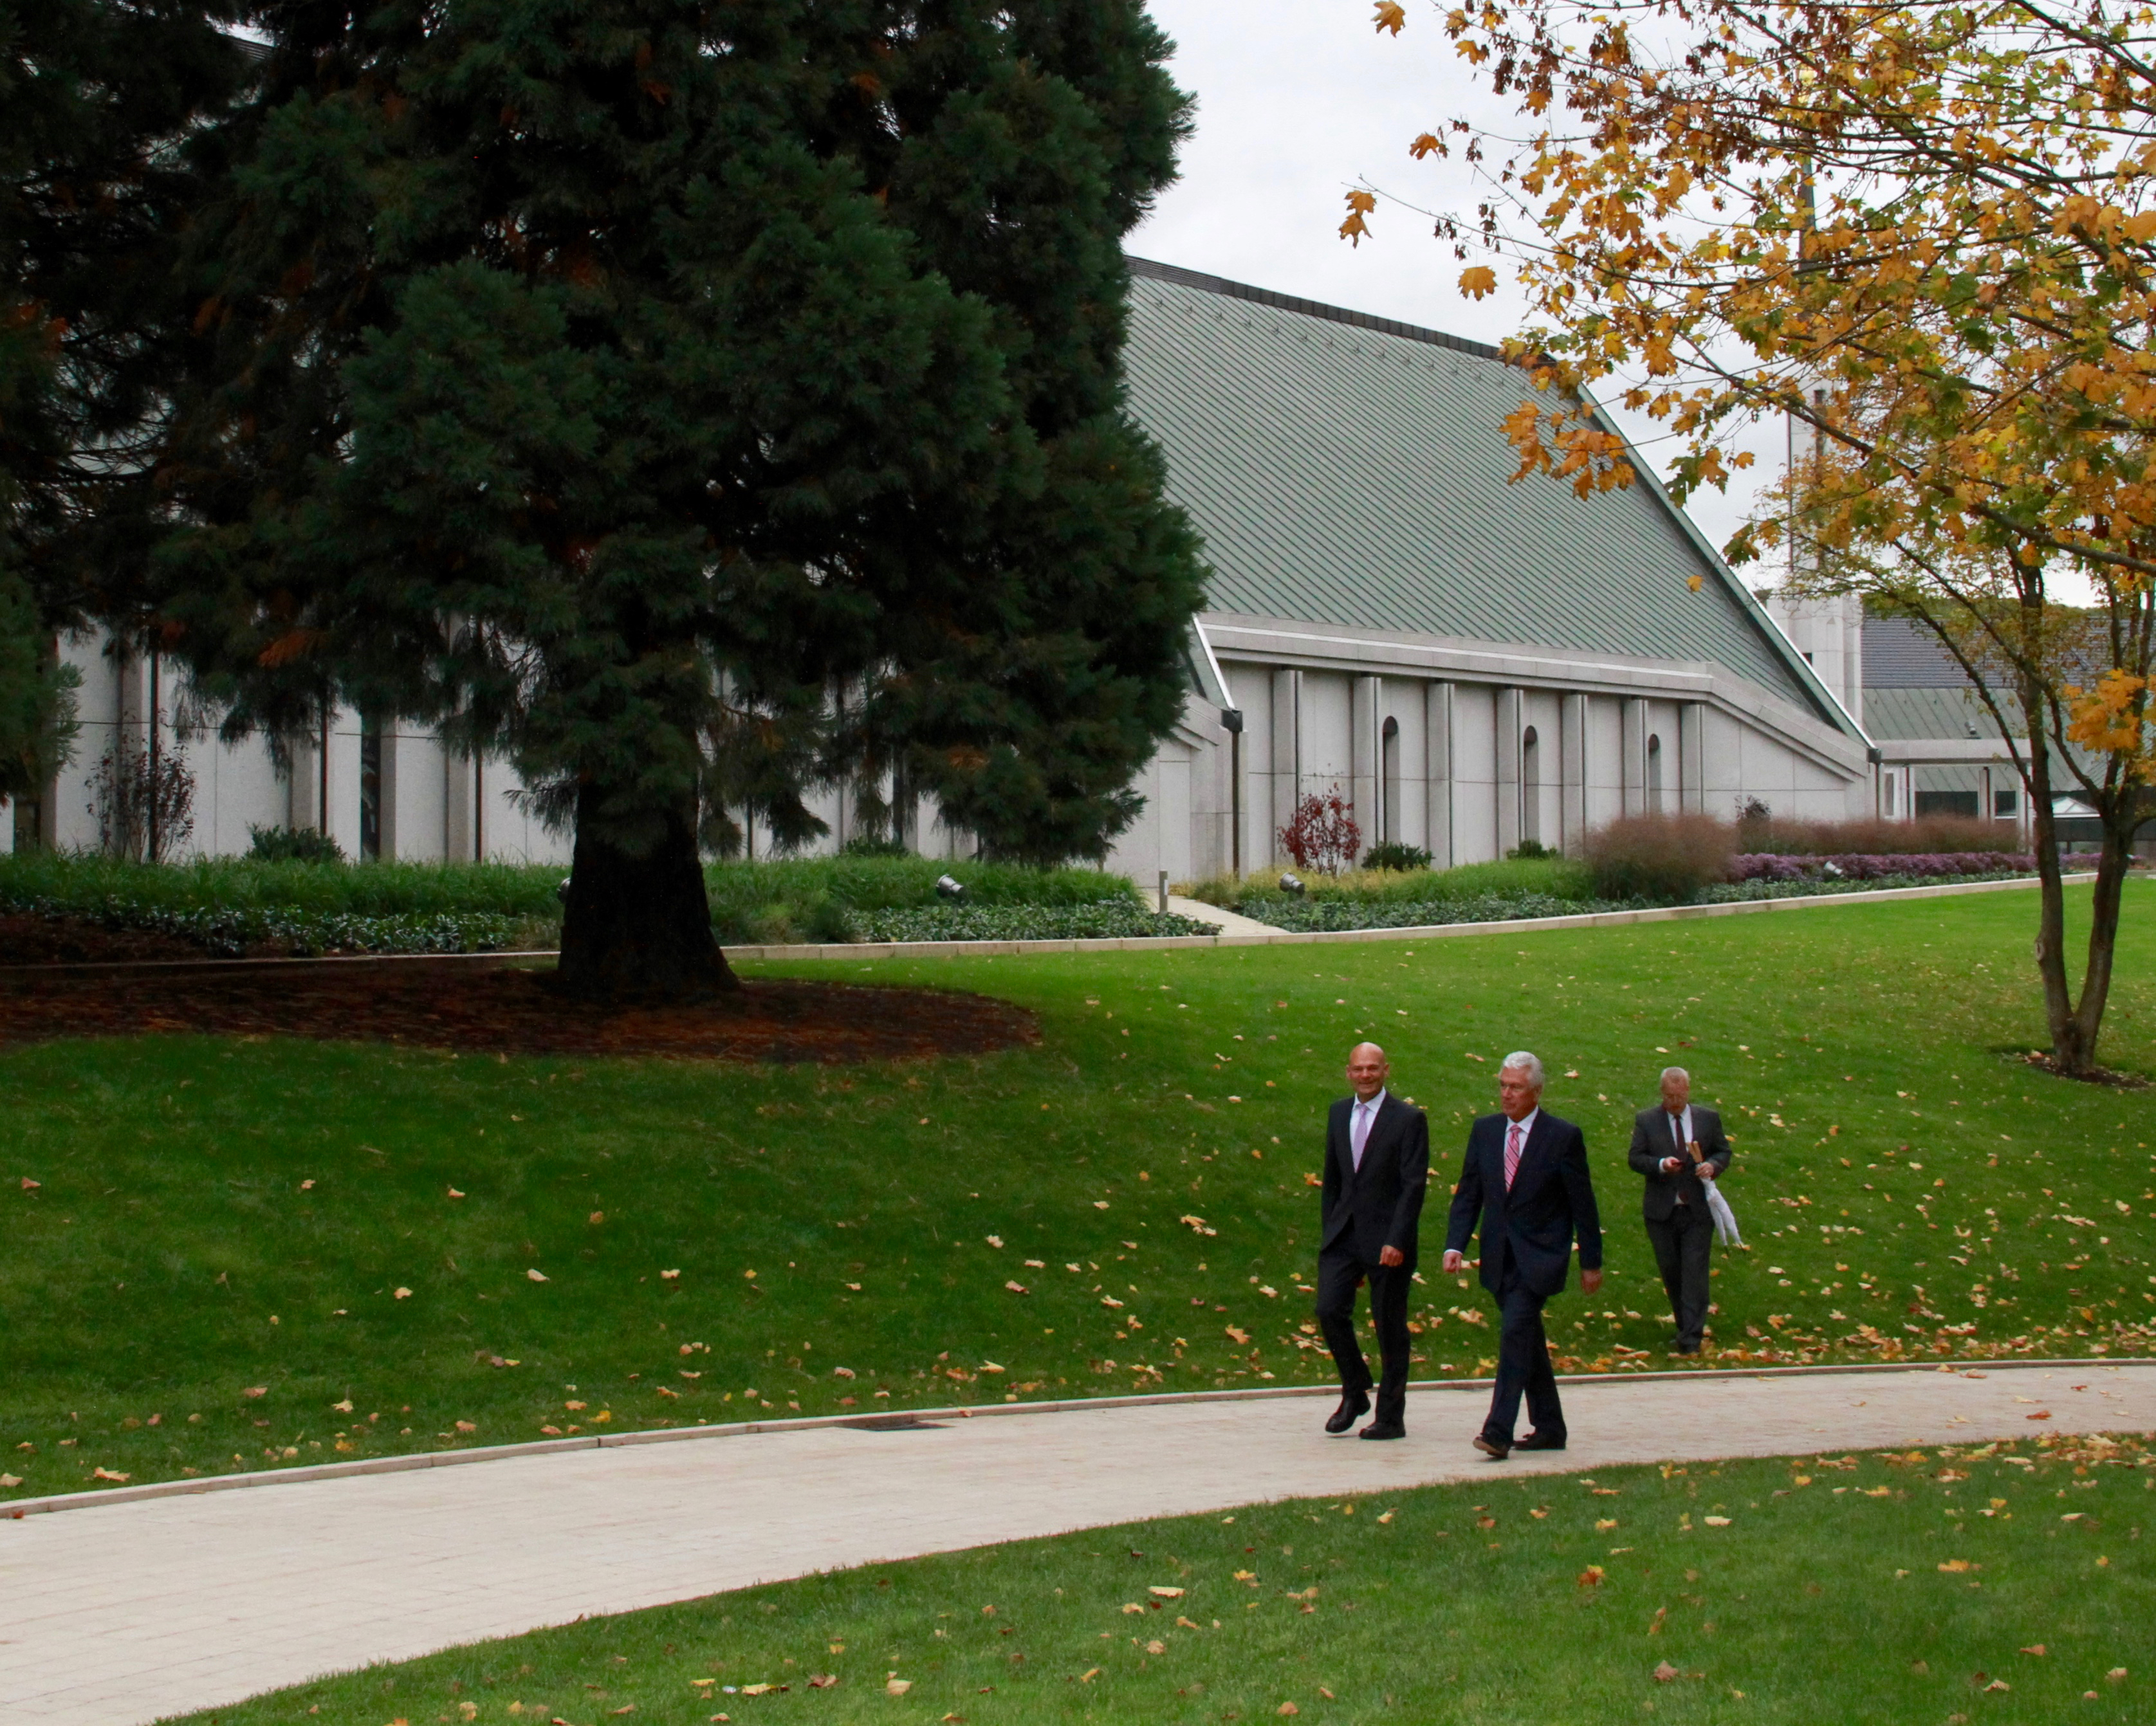 Elder Dieter F. Uchtdorf, right, and his son, Guido Uchtdorf, recreate a walk past the Frankfurt temple on Oct. 19, 2019, and on to the city center of Friedrichsdorf, Germany, in honor of a similar walk with three apostles during the temple's 1987 dedication.